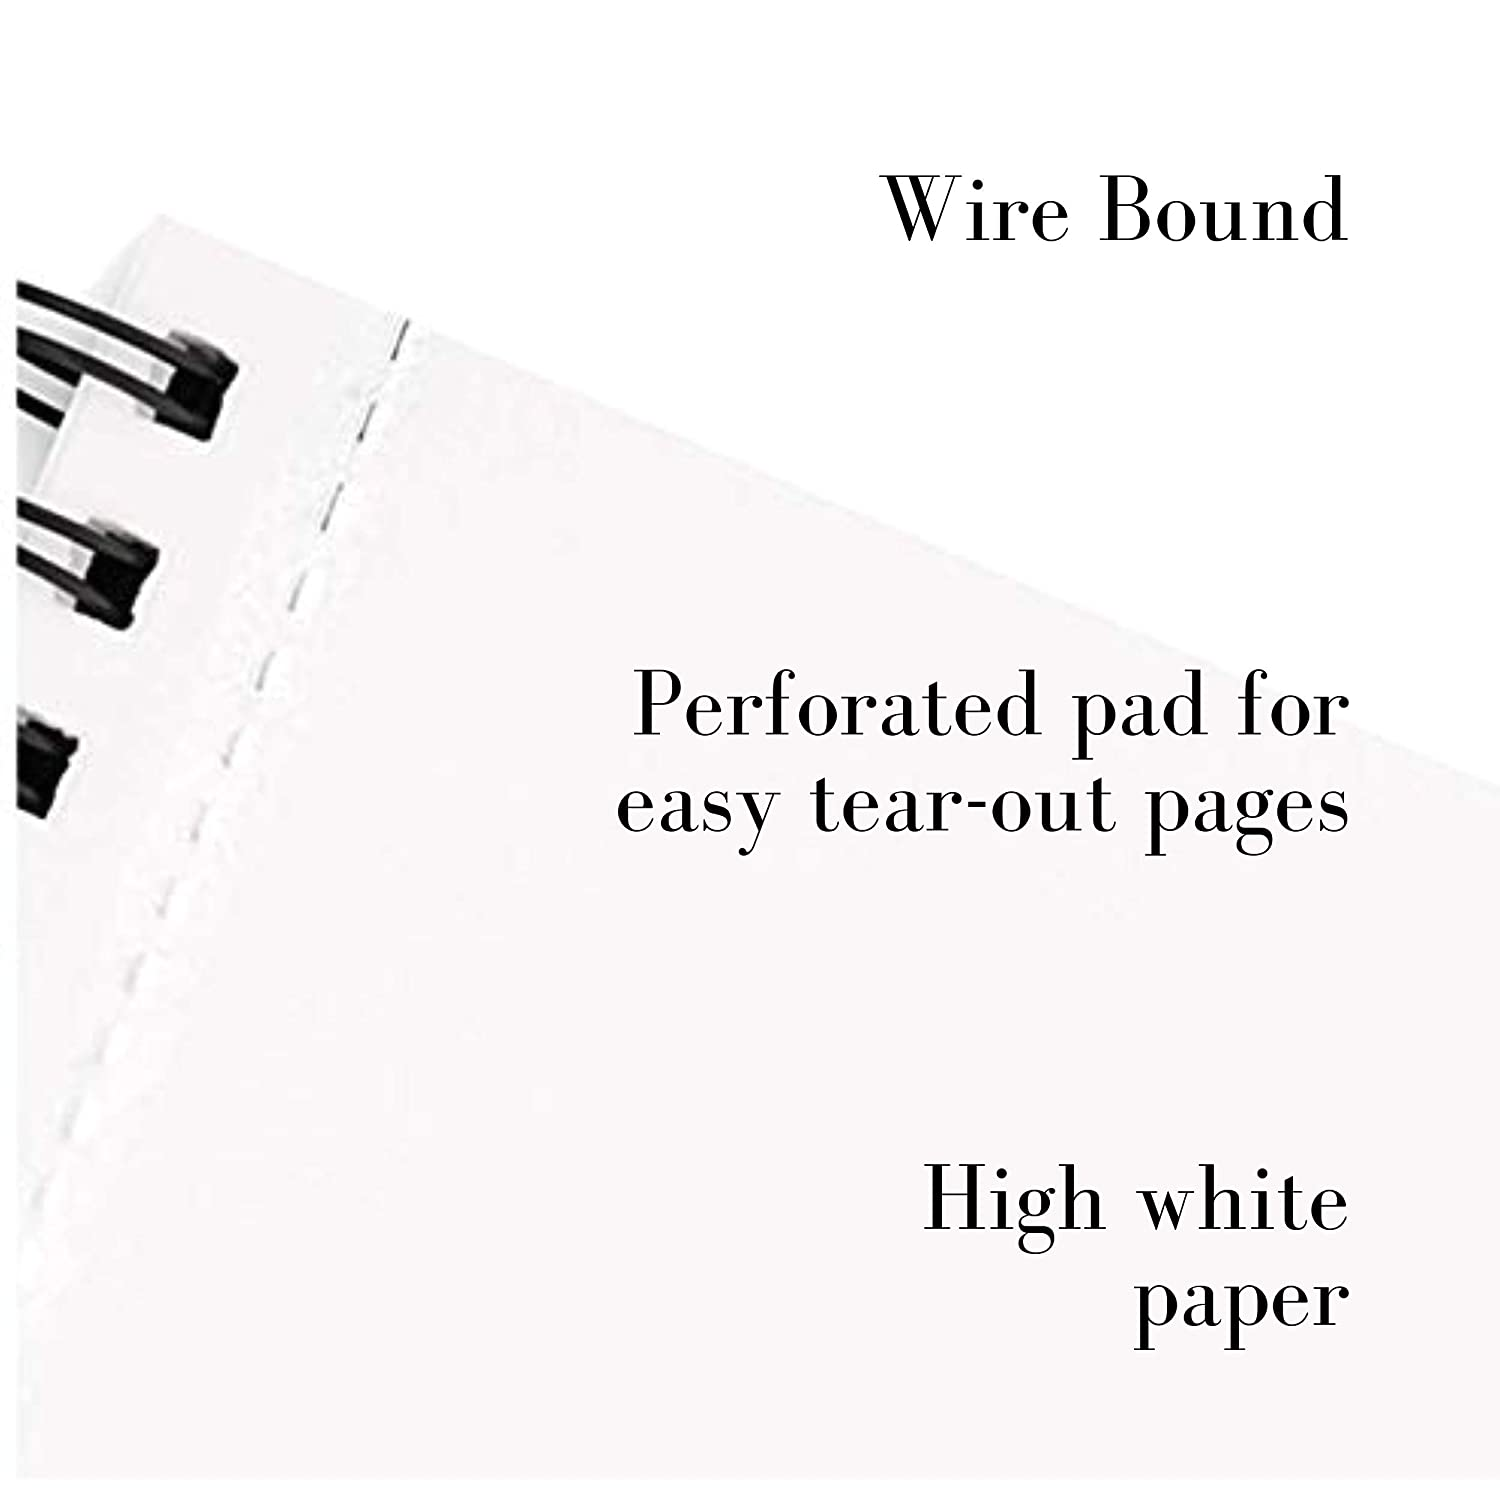 Painting for Drawing Pencil Sketching Etc. Smooth Surface Biodegradable Works with Pen Printing Heavy Weight Marker High White Bristol Paper Pad Wire Bound Scanning 20 Sheets